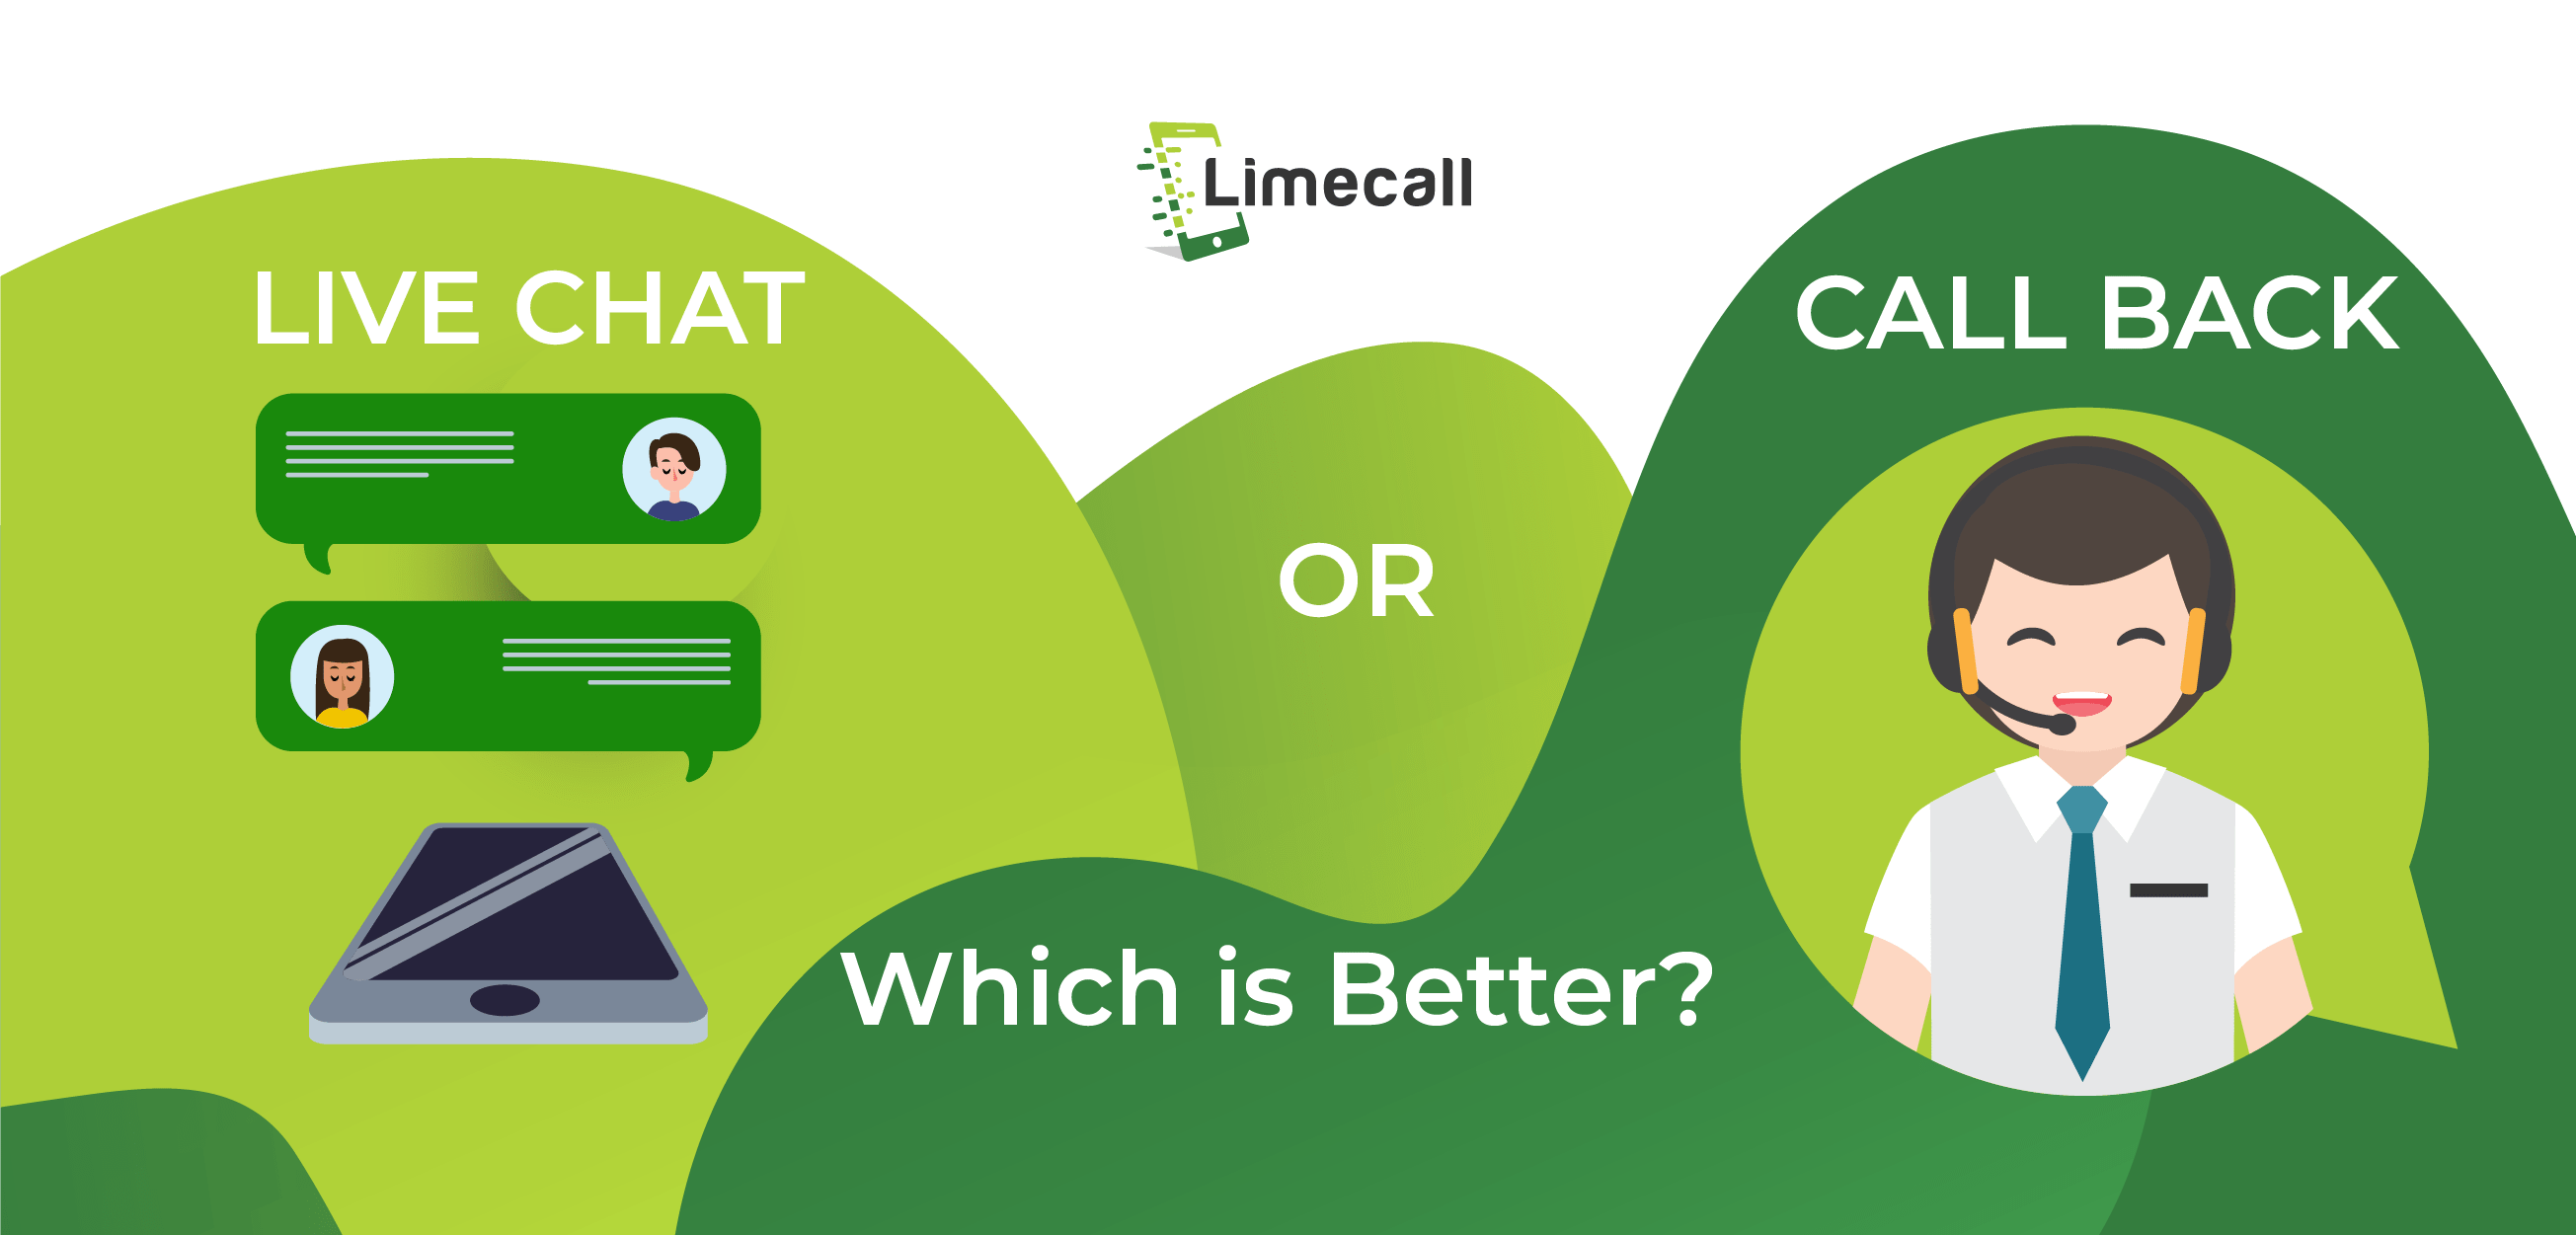 Live Chat or Call Back which is better